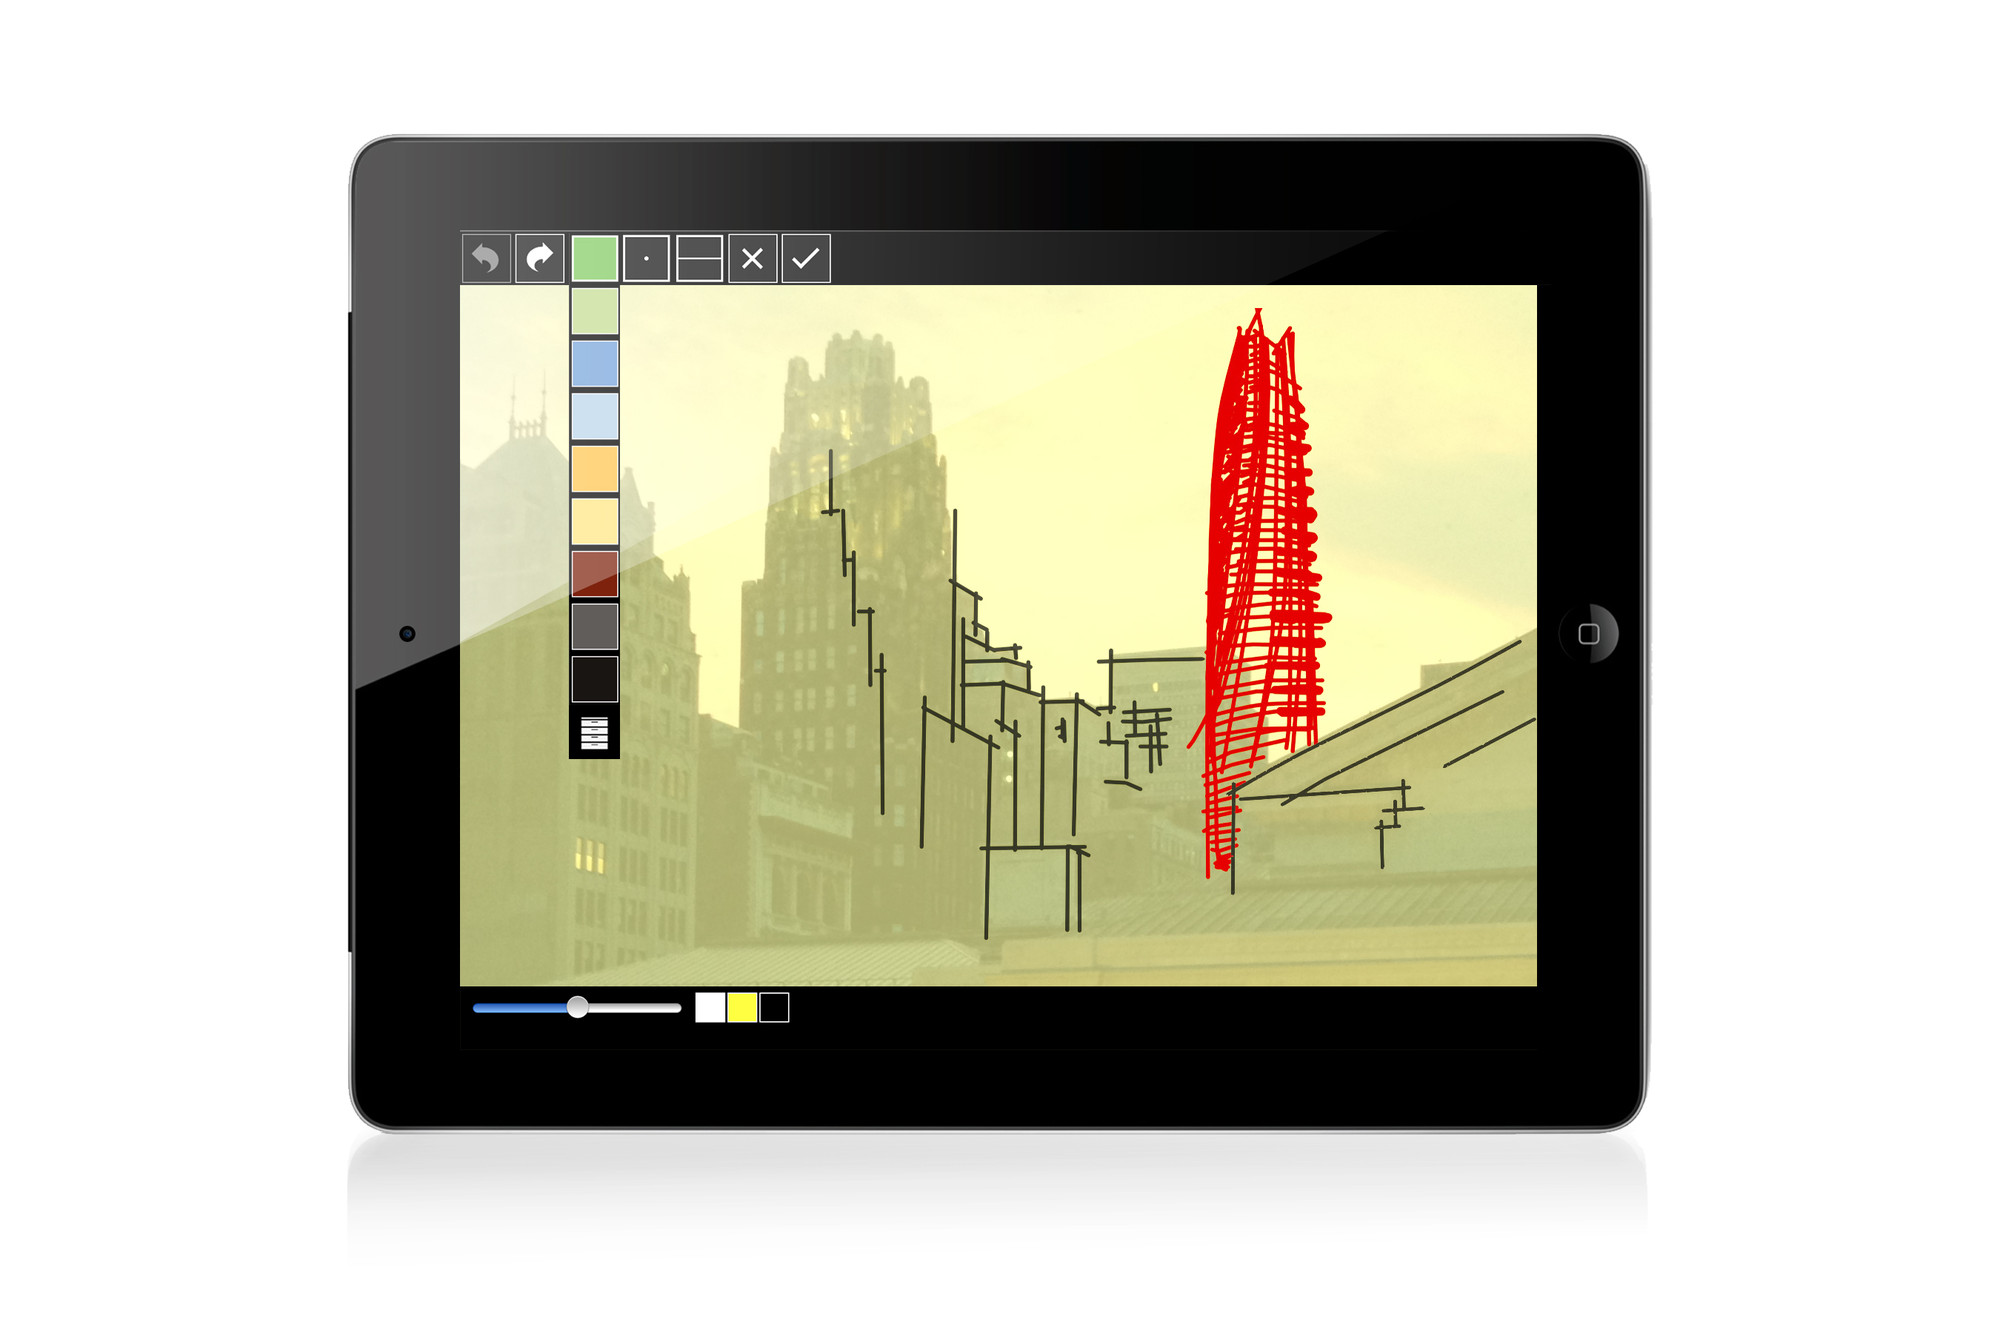 ArchDaily App Guide: Morpholio 2.0, Courtesy of Morpholio